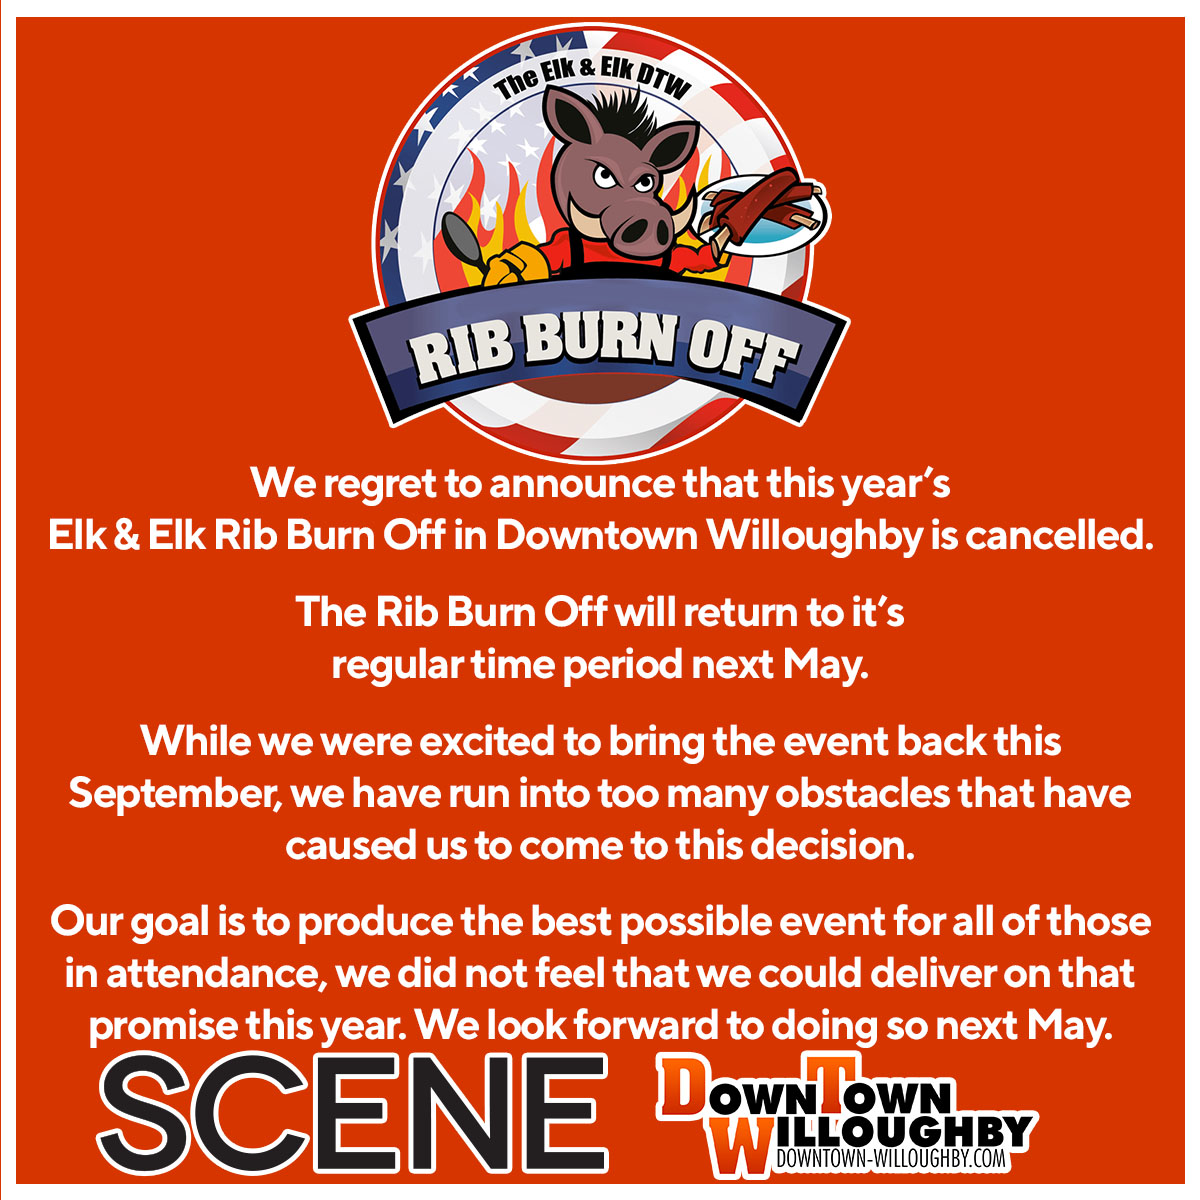 We regret to announce that the 2021 Elk & Elk Rib Burn Off in Downtown Willoughby is cancelled. The Rib Burn Off will return to it's regular time period next May. While we were excited to bring the event back this September, we have run into too many obstacles that have caused us to come to this decision. Our goal is to produce the best possible event for all of those in attendance, we did not feel that we could deliver on that promise this year. We look forward to doing so next May.